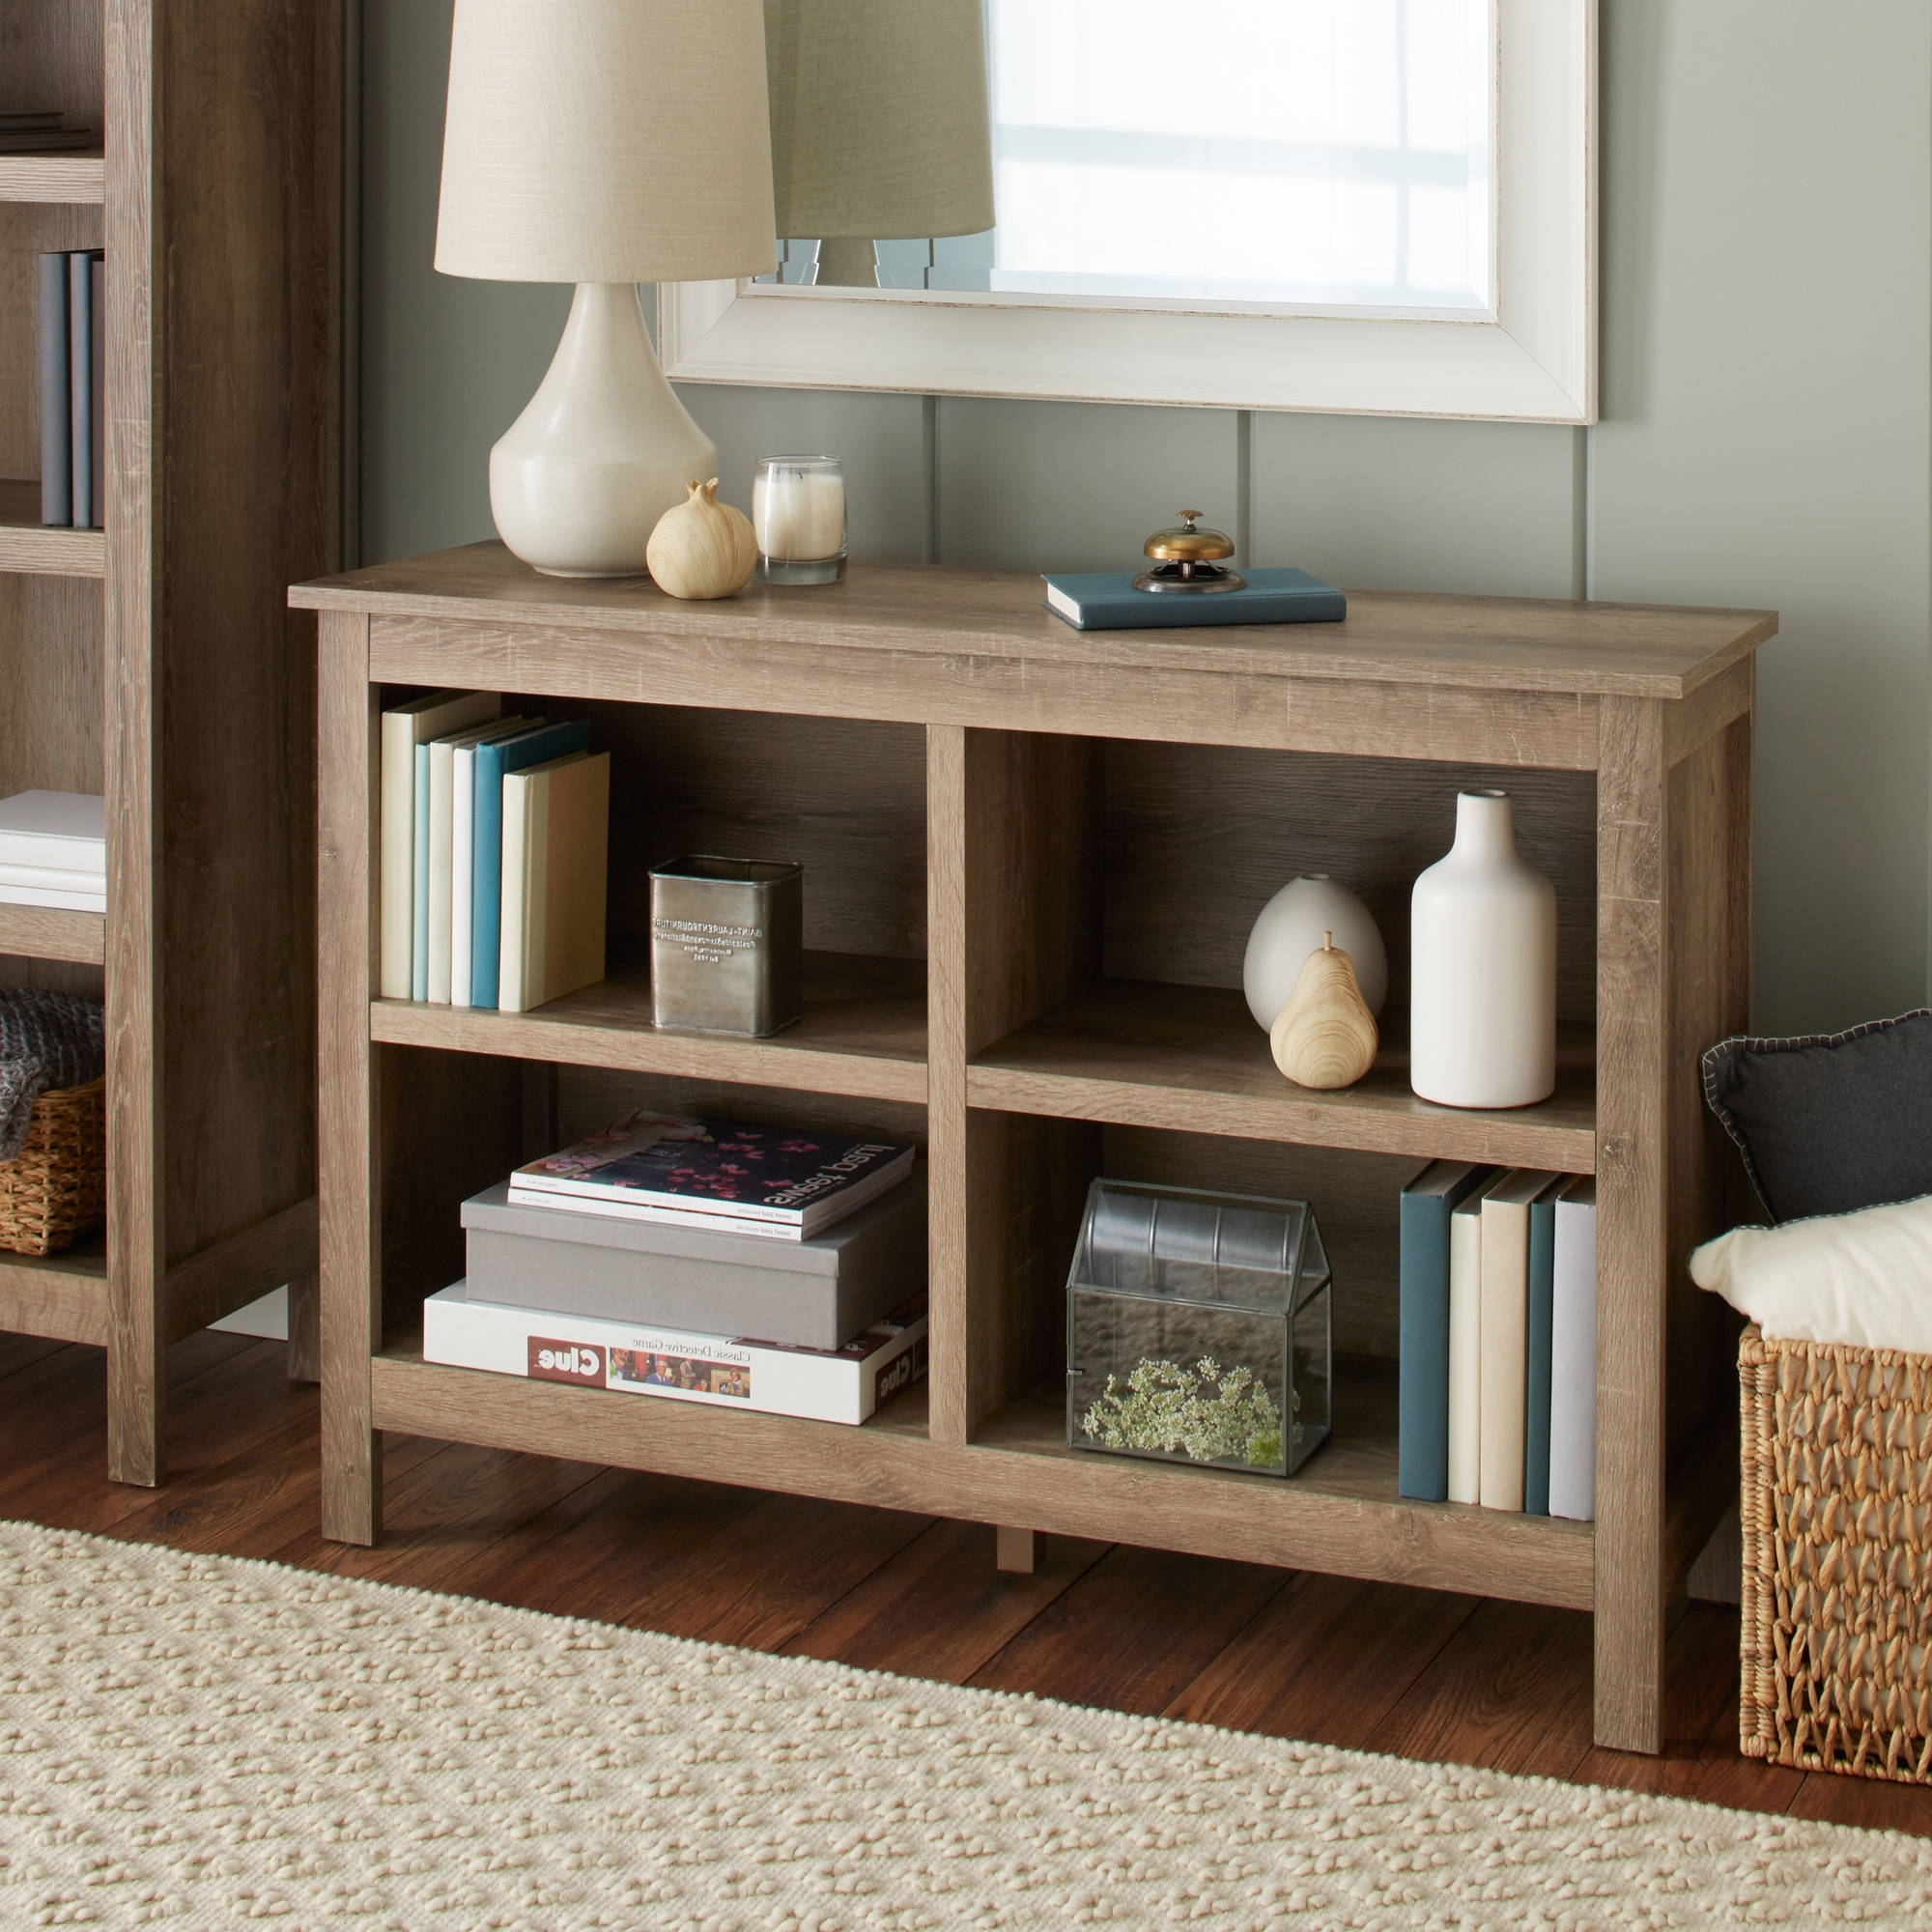 Most Popular 10 Spring Street Farmhouse Horizontal Bookcase – Walmart With Regard To Threshold Bookcases (View 15 of 15)